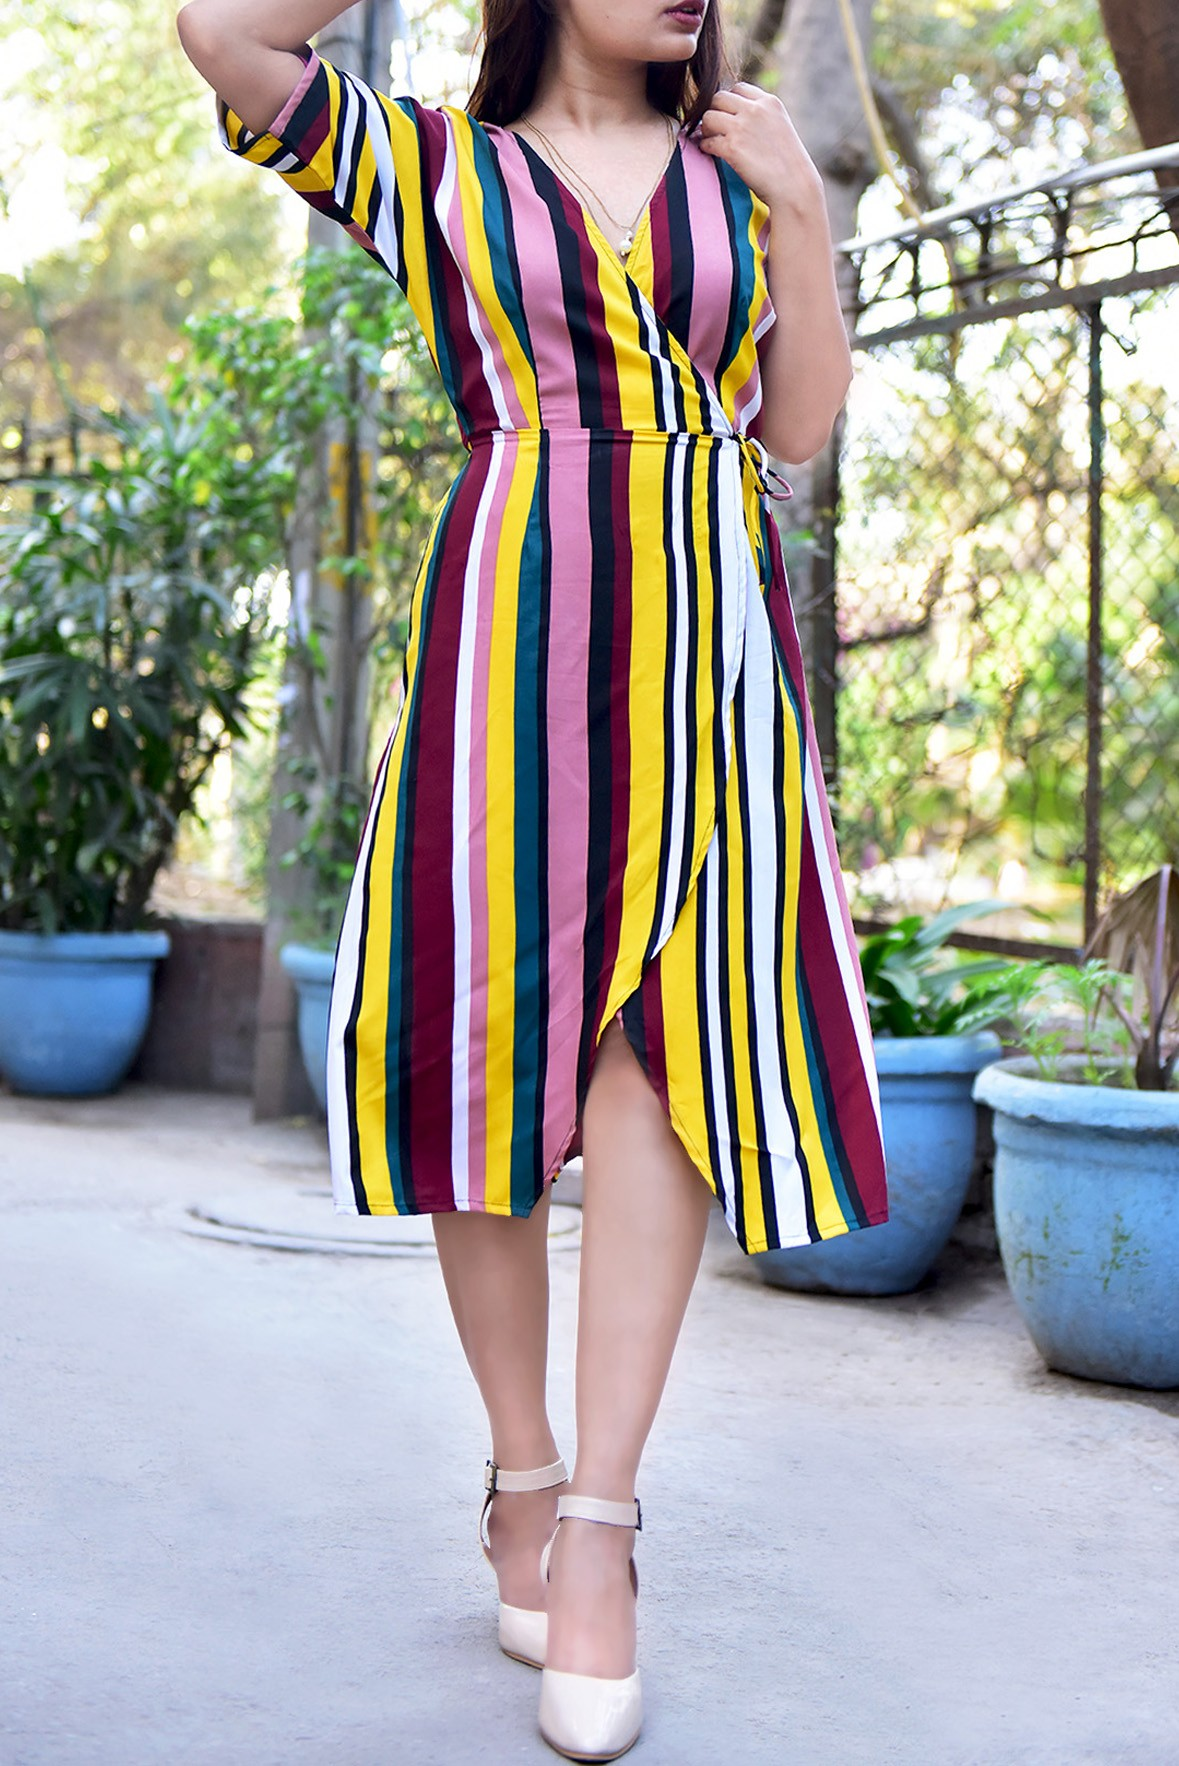 Conventional rainbow dress